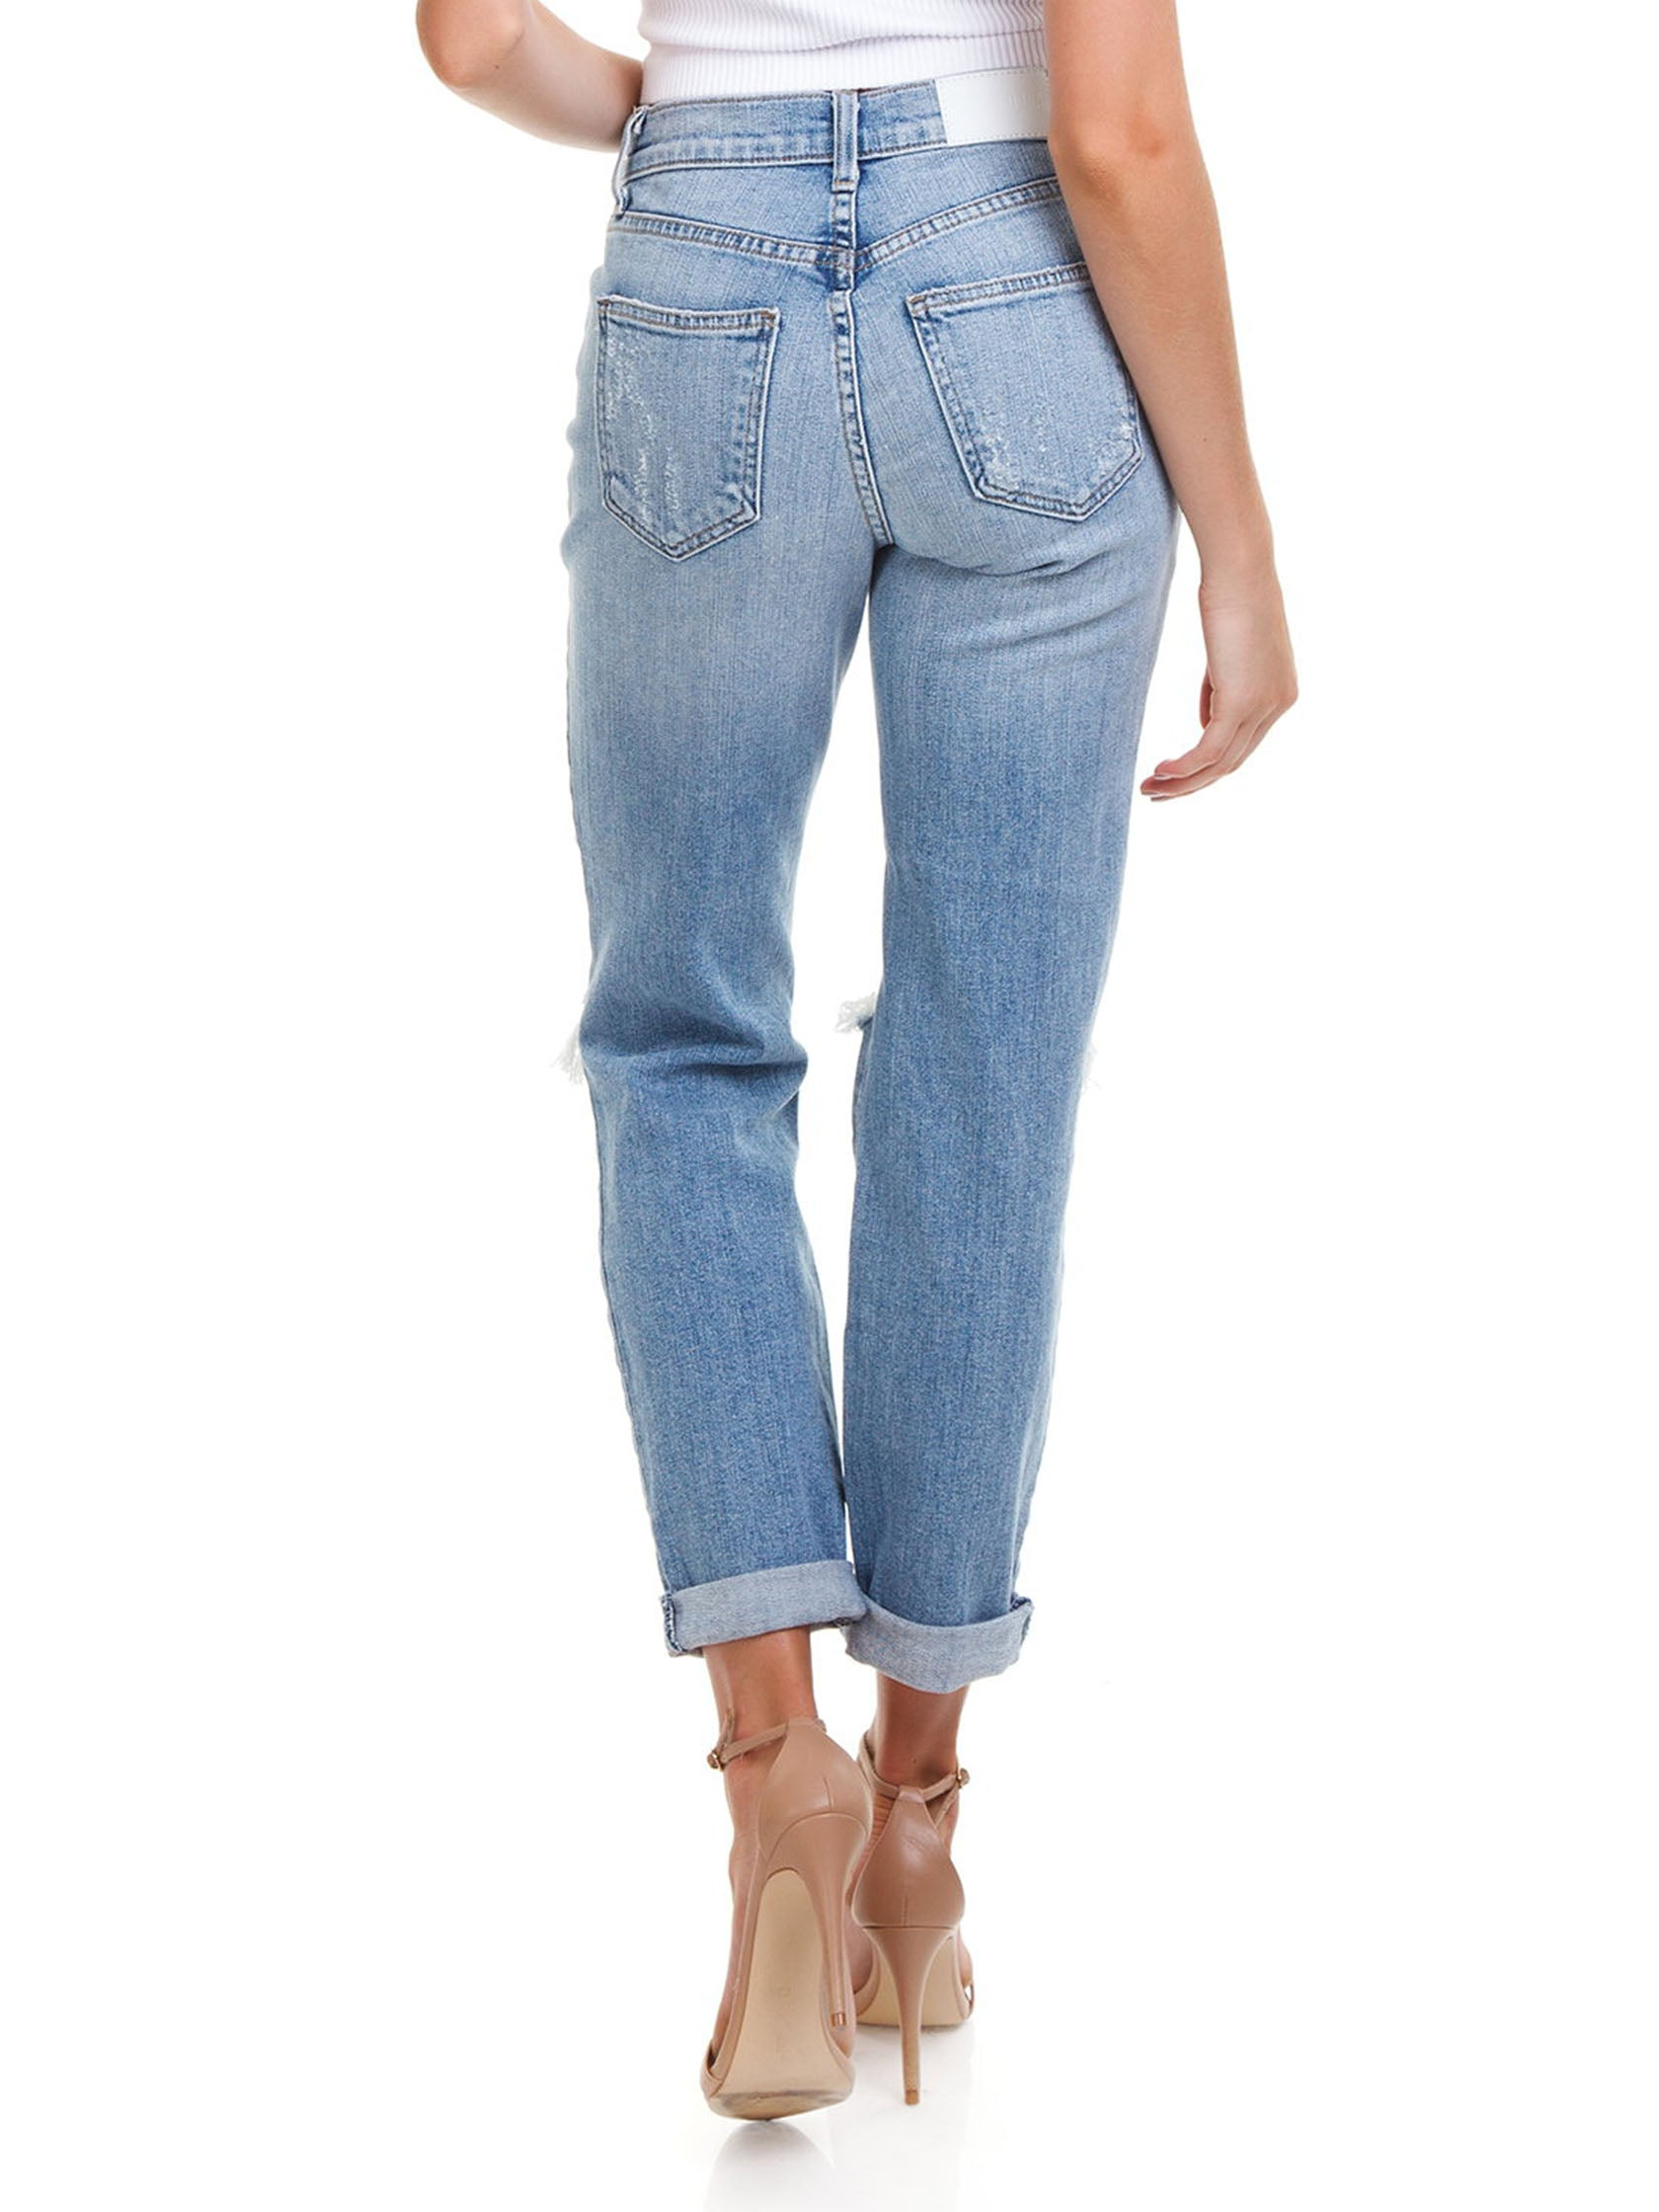 Women outfit in a denim rental from PISTOLA called Presley High Rise Girlfriend Jeans